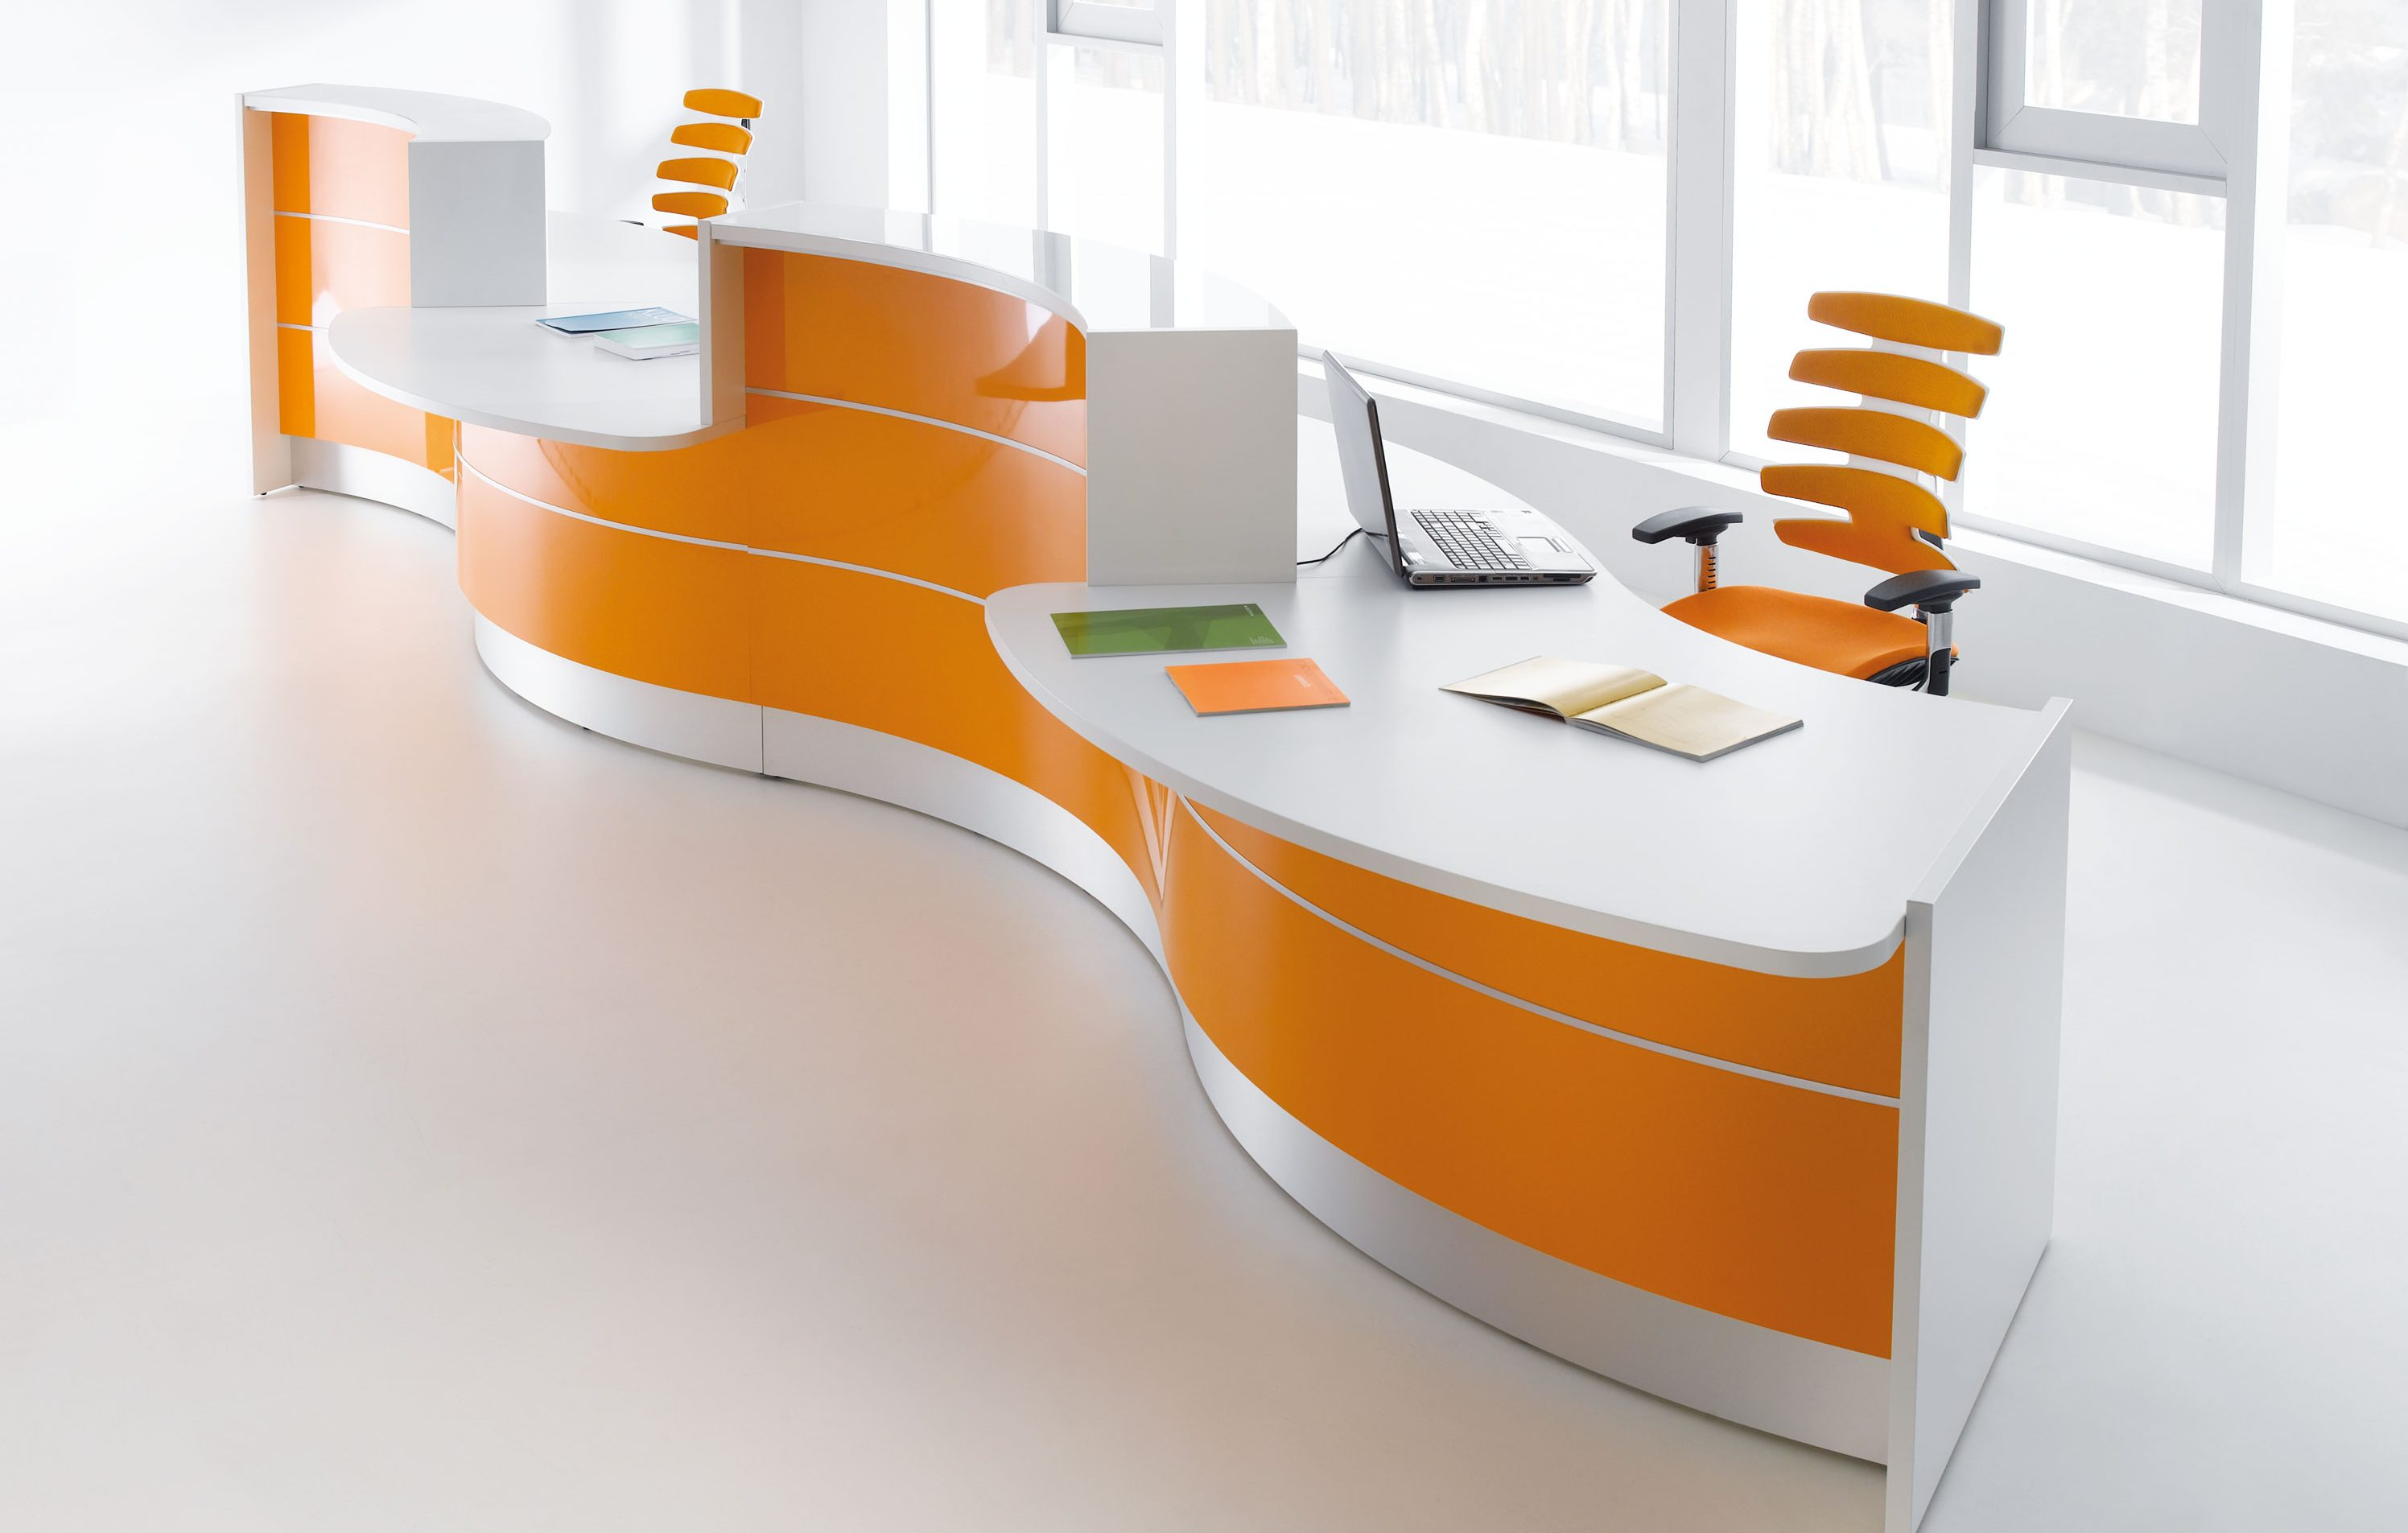 Office rchives - rchitecture rt Designs - ^